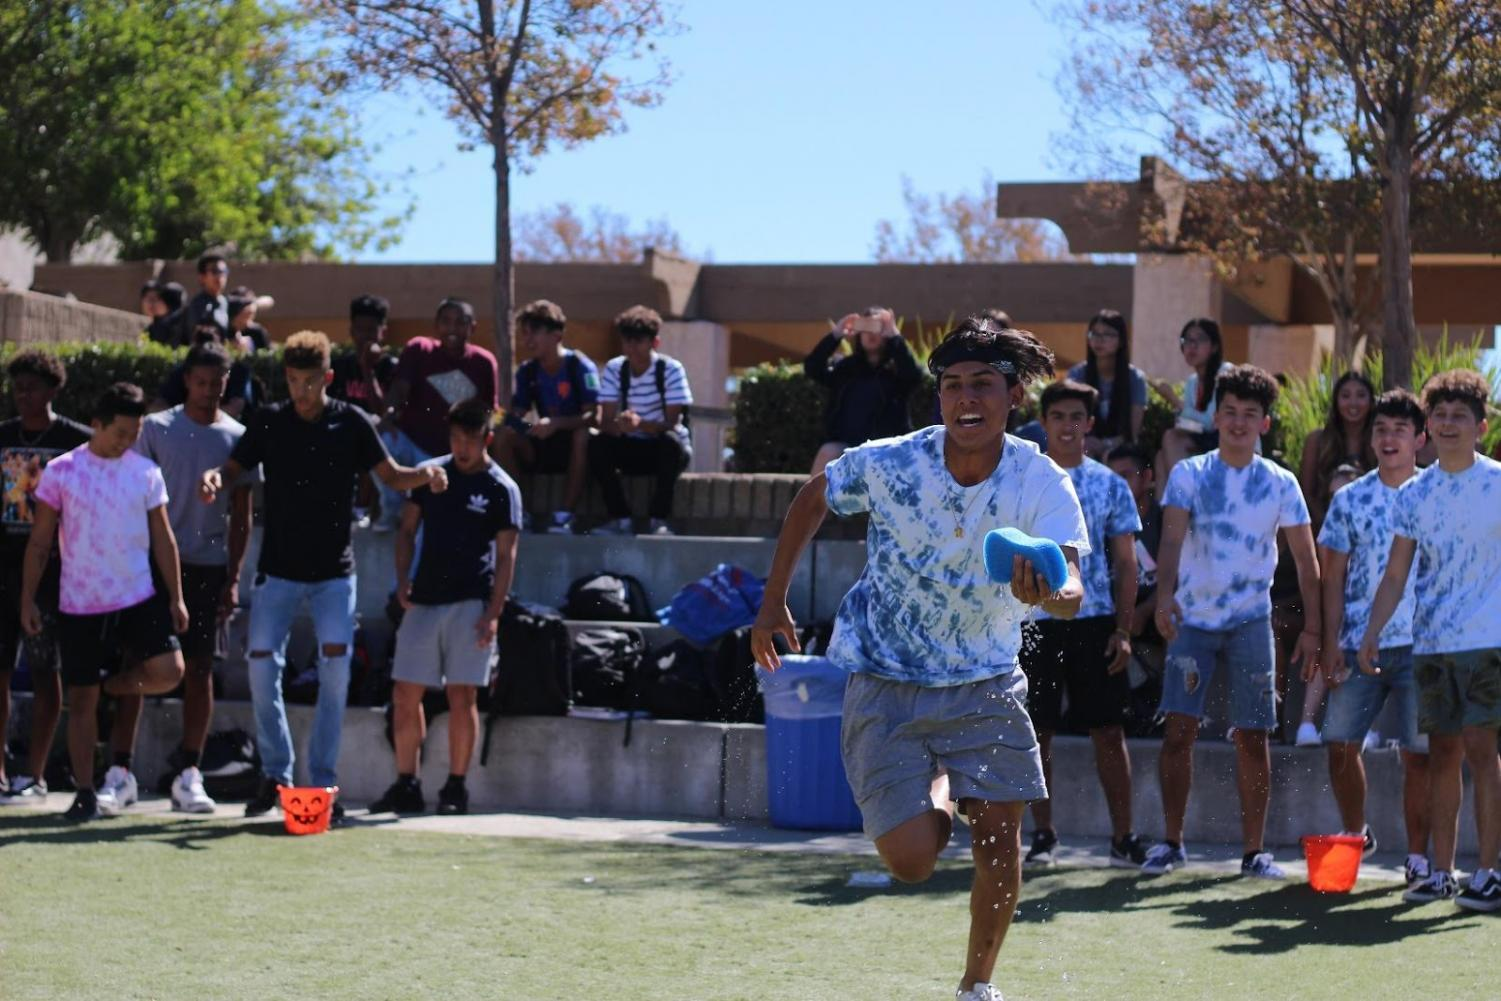 Senior Zack Marin competed for the blue team in the sponge relay as a part of  Rainbow Races in the ampitheater during lunch on Oct. 24.